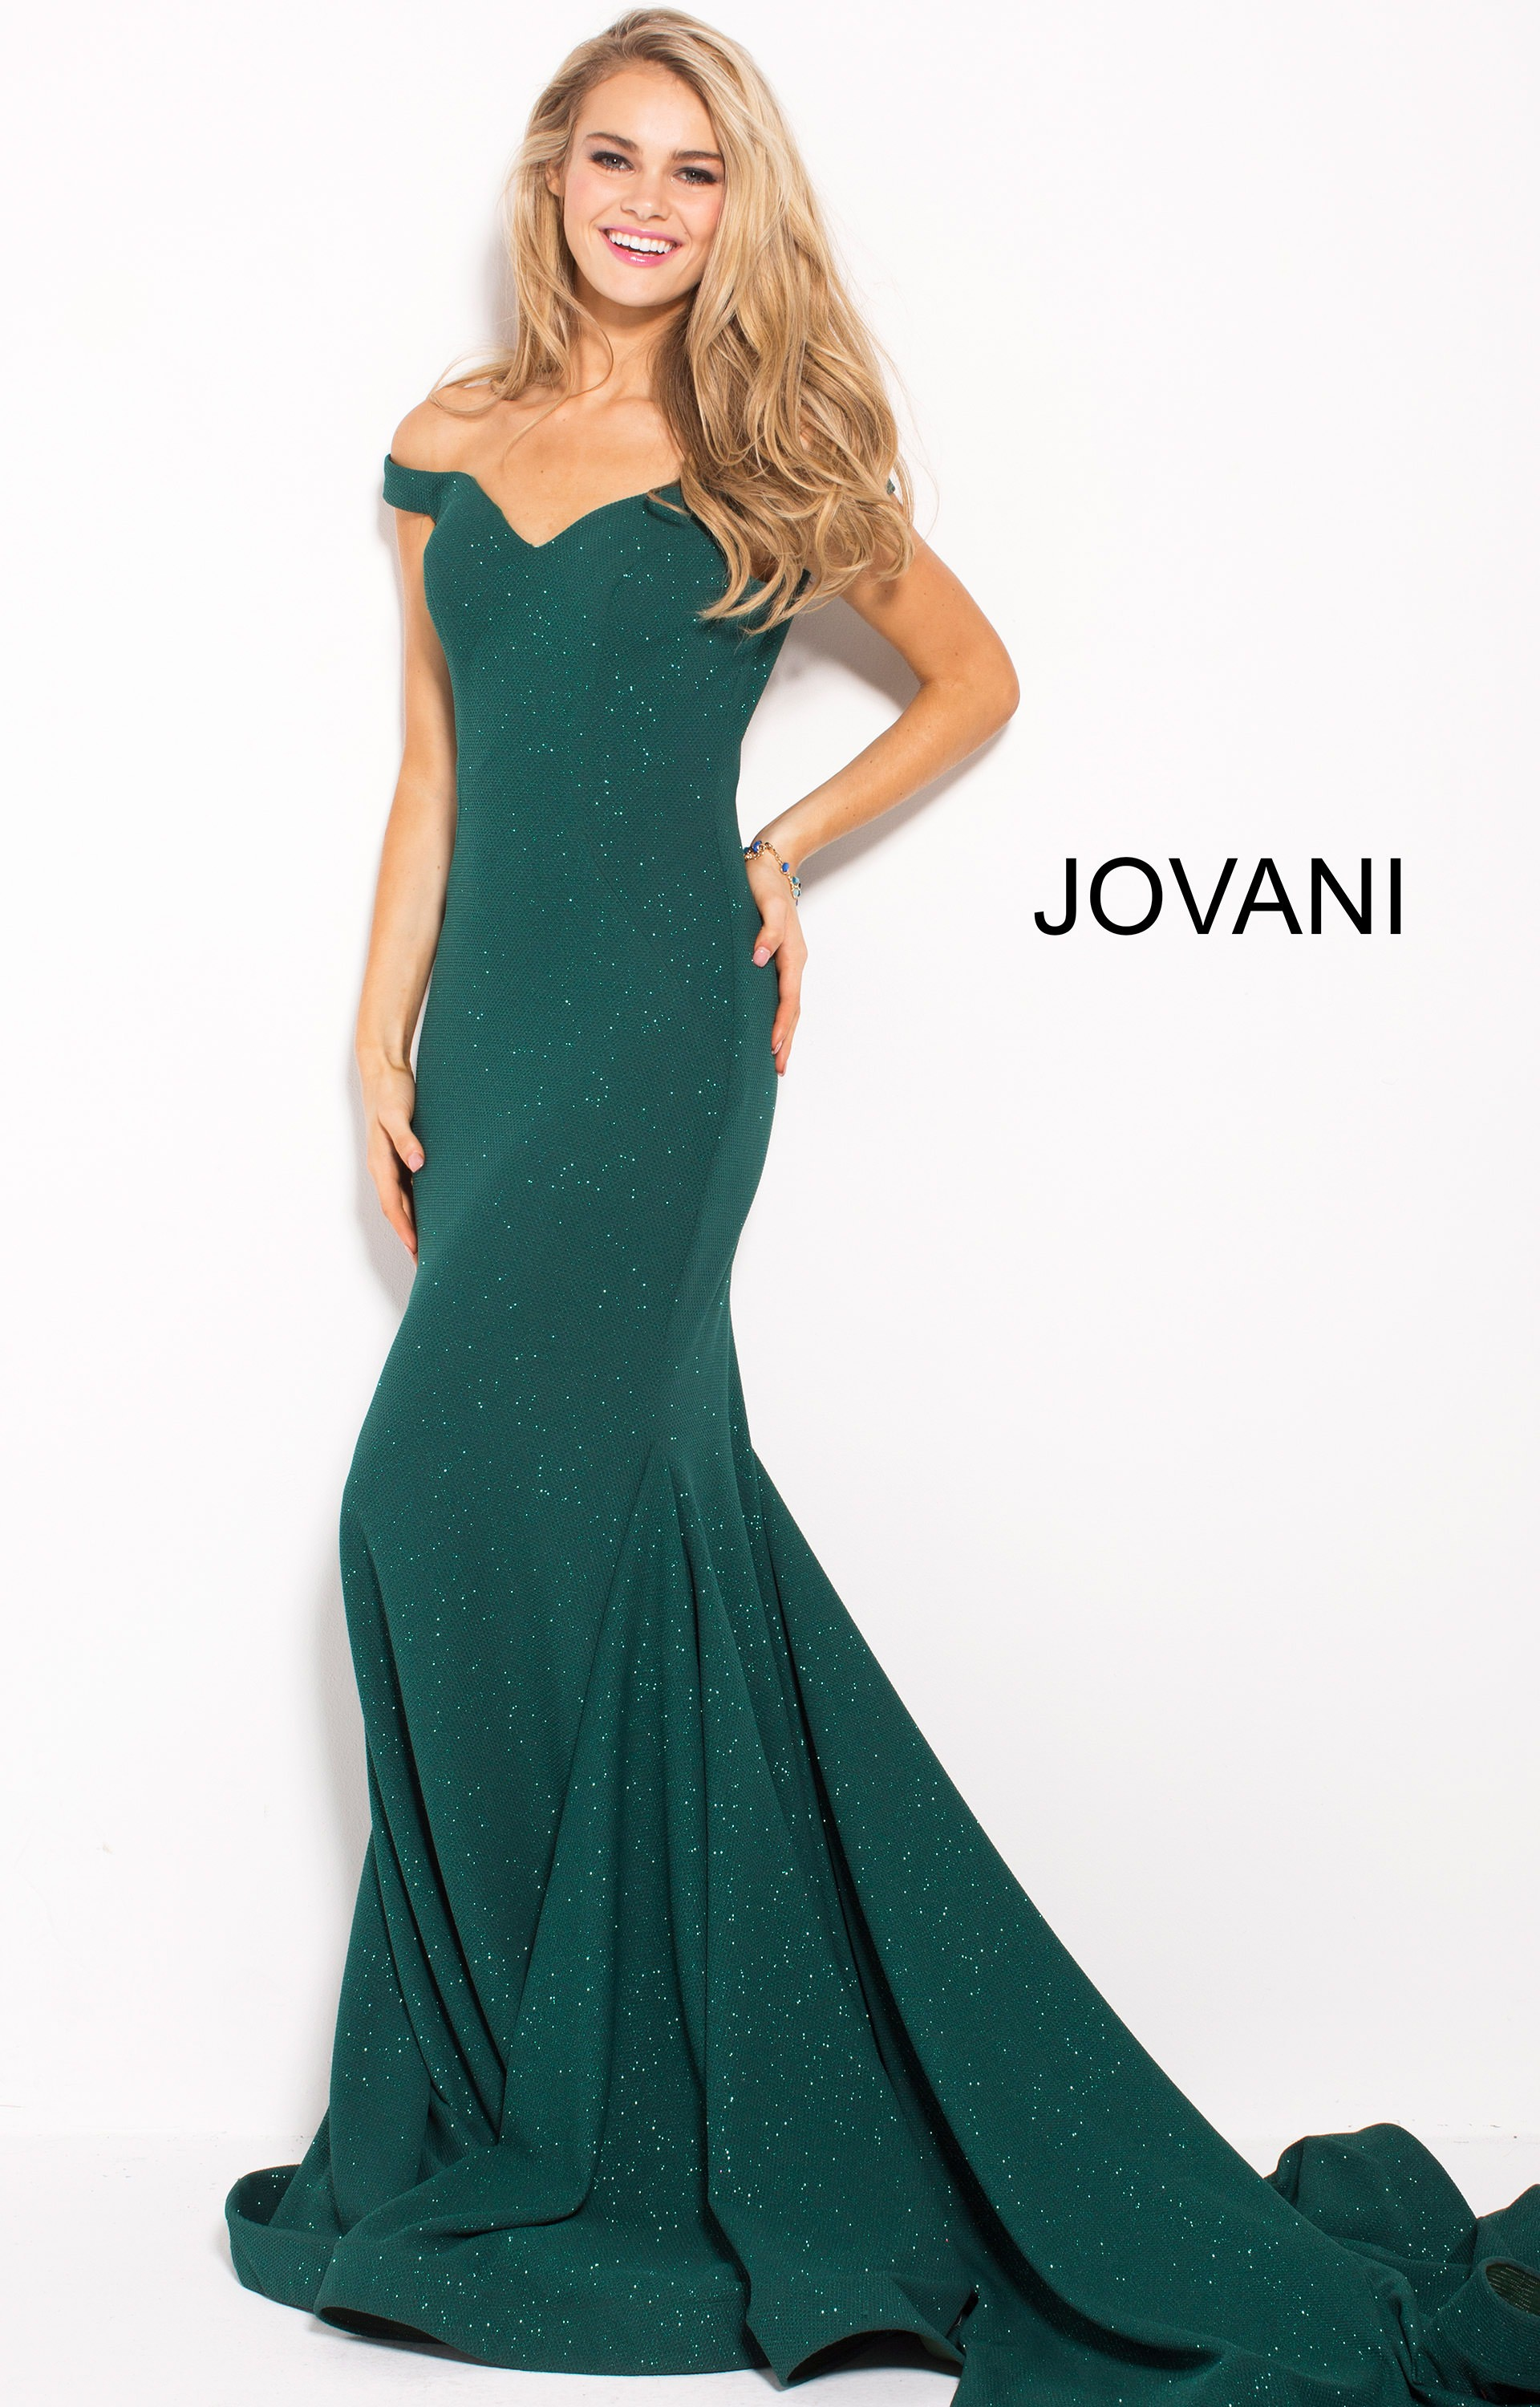 39914a66 Jovani 55187 - Fitted Glittery Dress with Sweetheart Neckline and Off the  Sholders